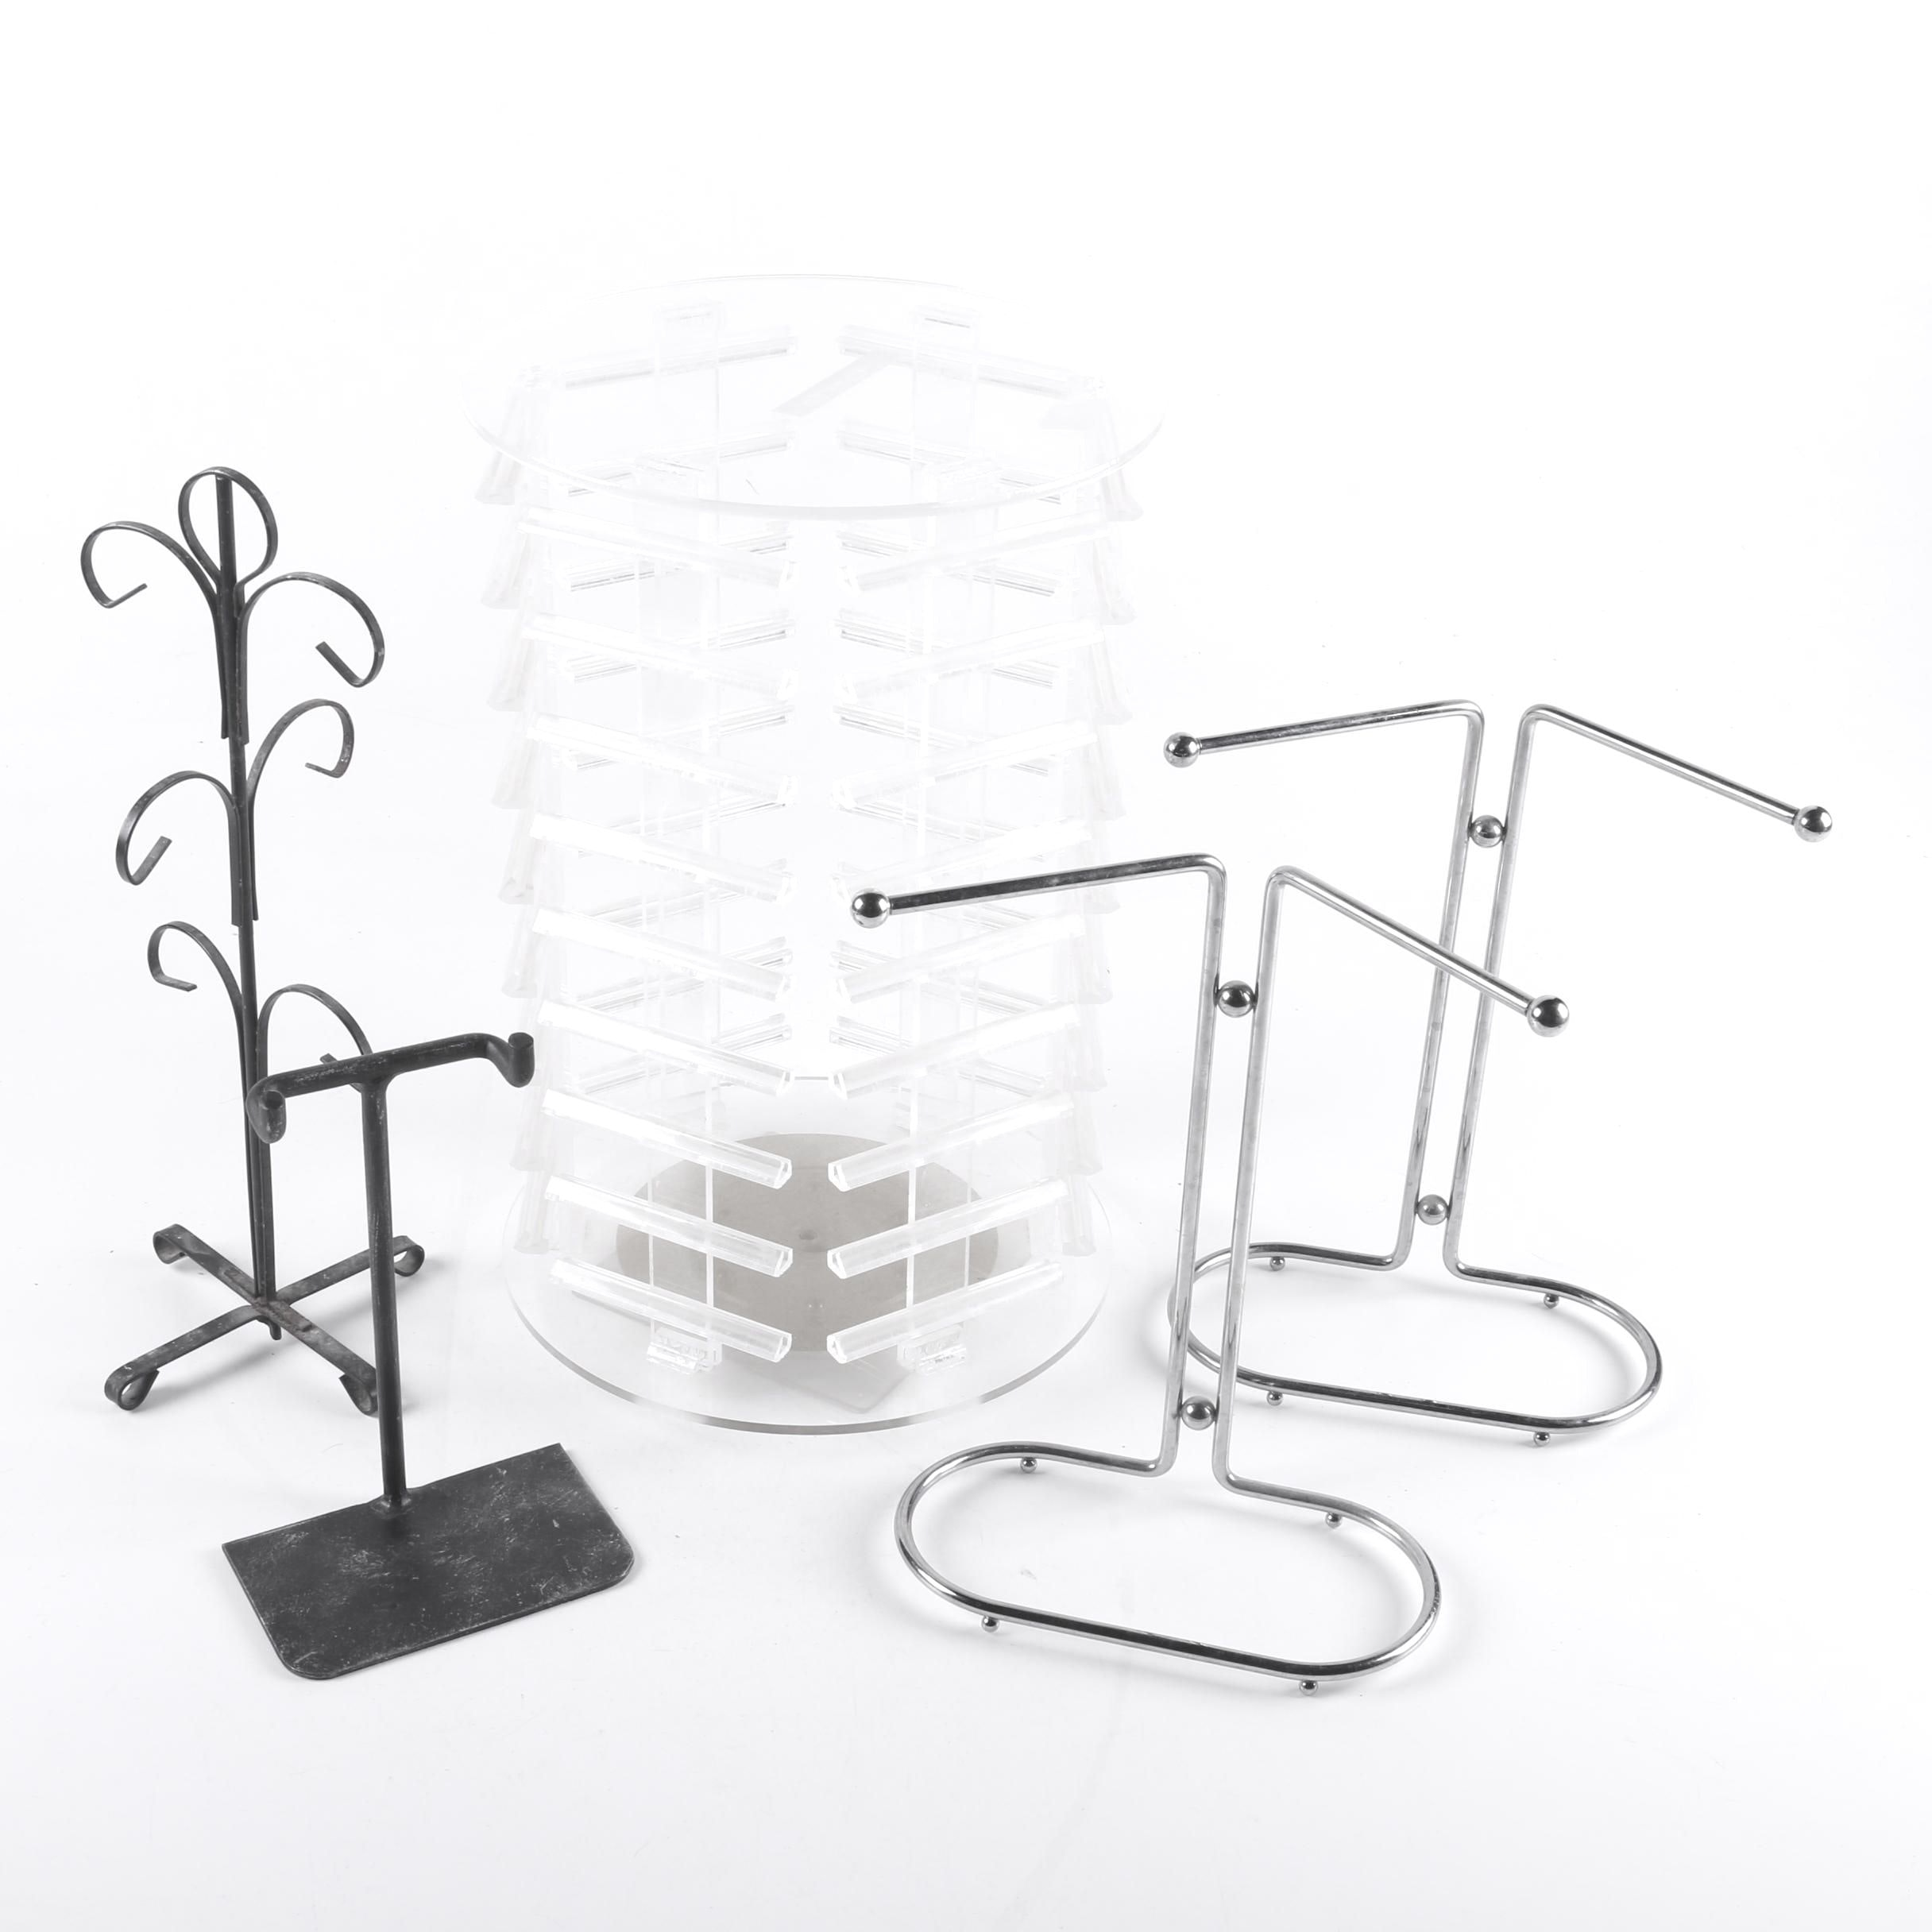 Selection of Metal and Plastic Jewelry Stands